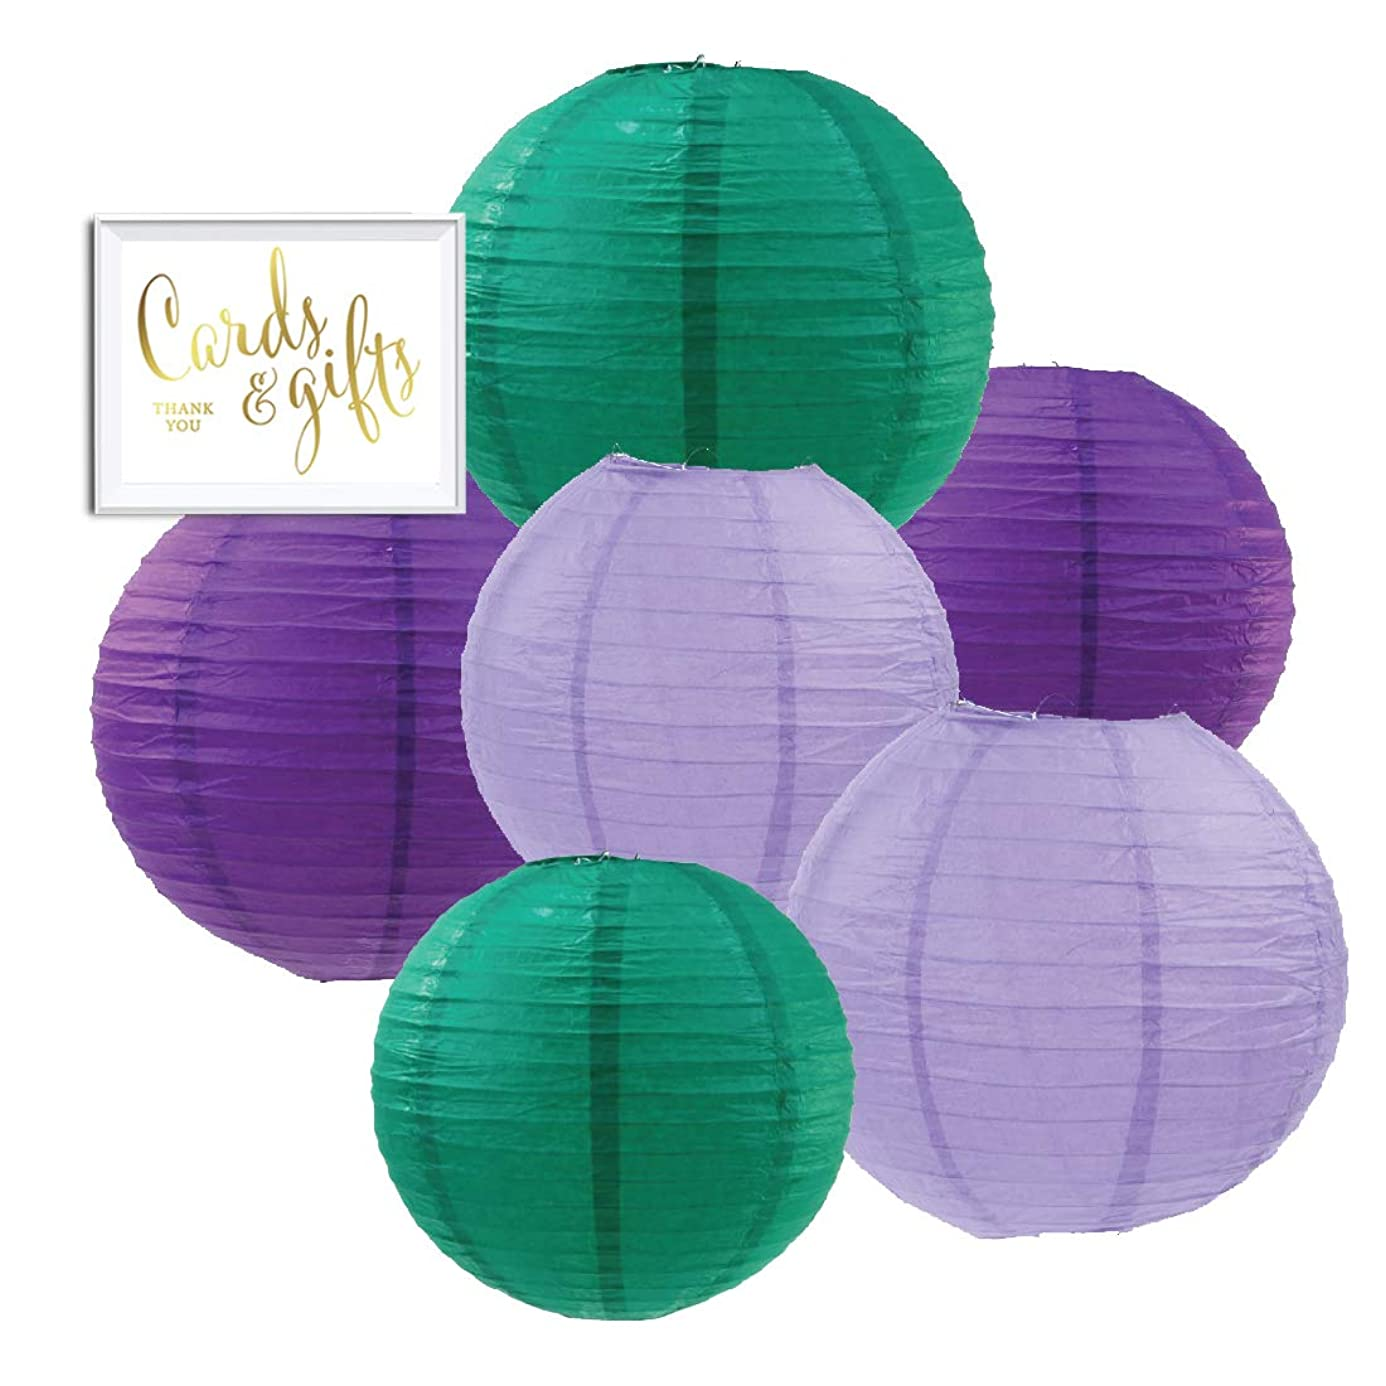 Andaz Press Aqua, Lavender, Purple Hanging Paper Lanterns Decorative Kit, 6-Pack with Free Gifts Table Party Sign, Mermaid, Princess, Pony Birthday Party Decorations, Assorted 8-Inch 10-Inch Sizes wso7954492